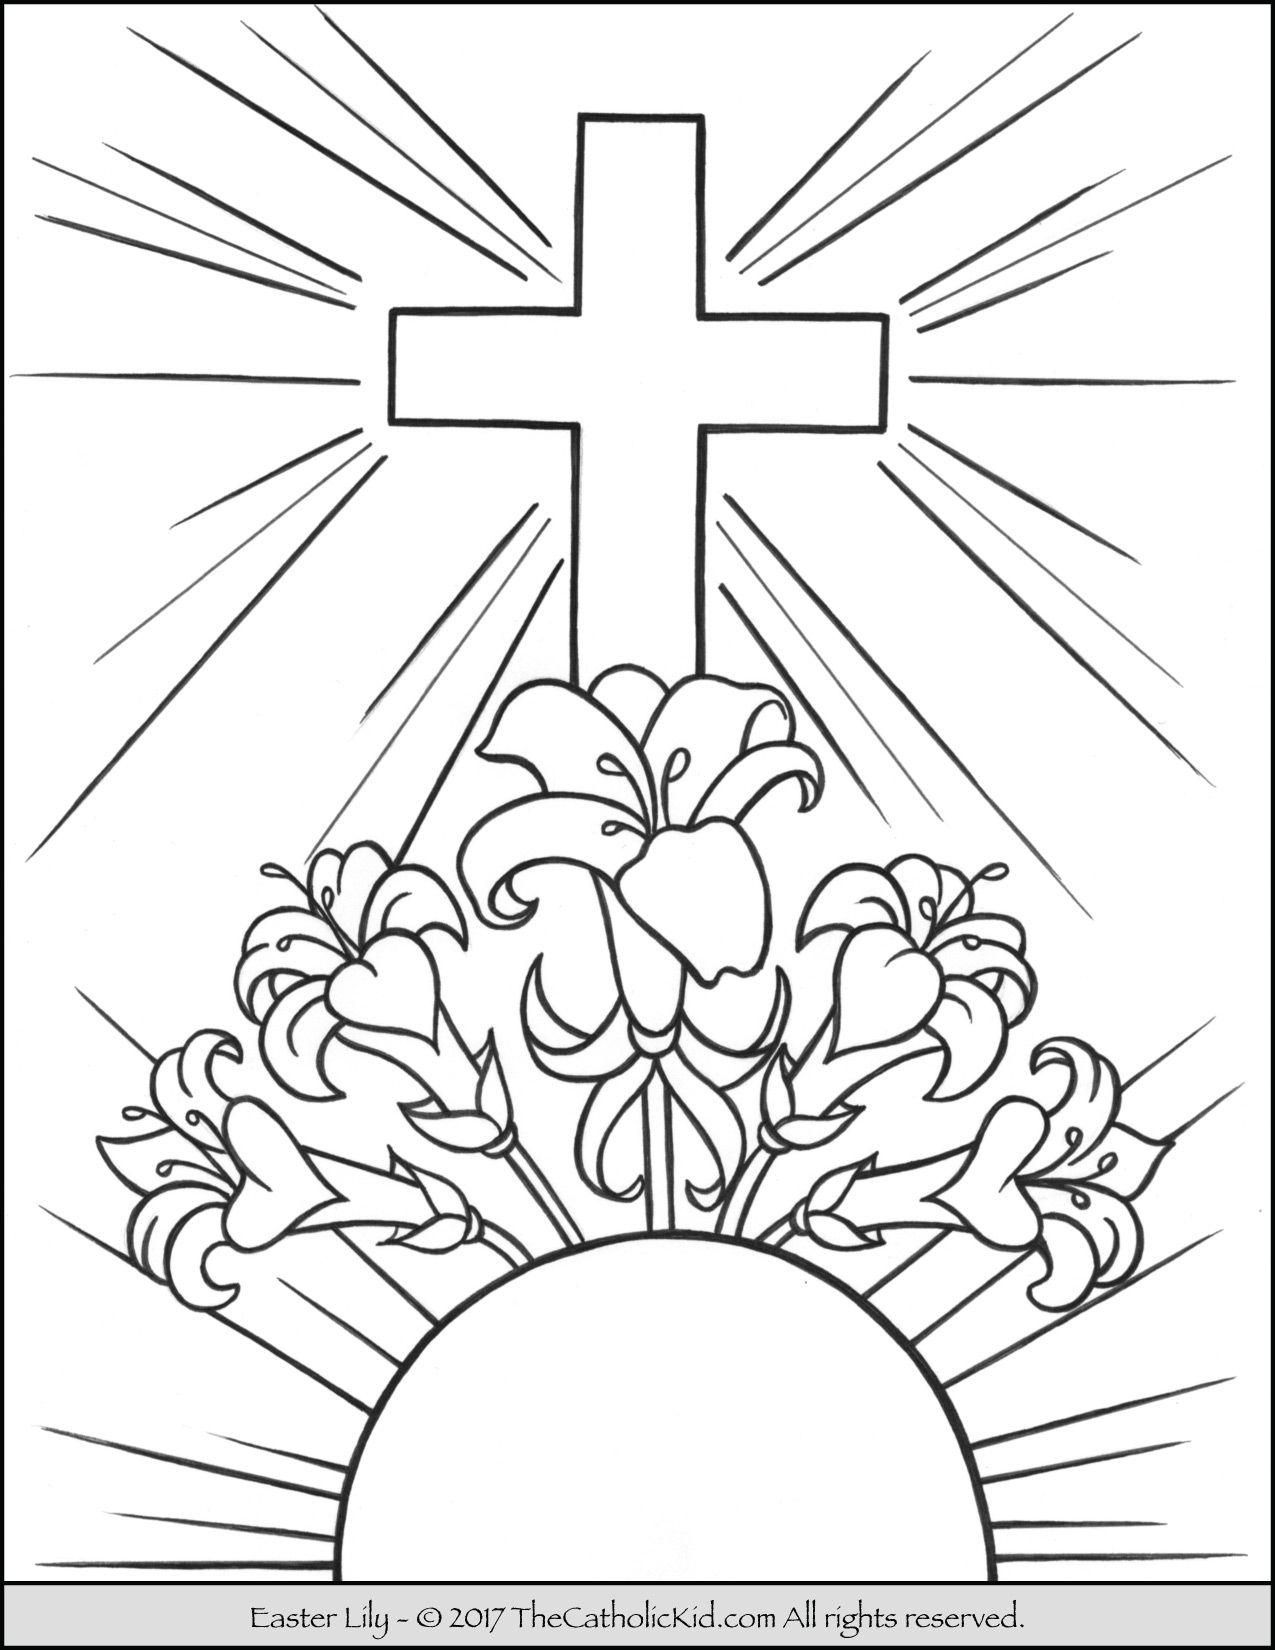 51 Page Colouring Cross Coloring Page Easter Coloring Pages Easter Colouring